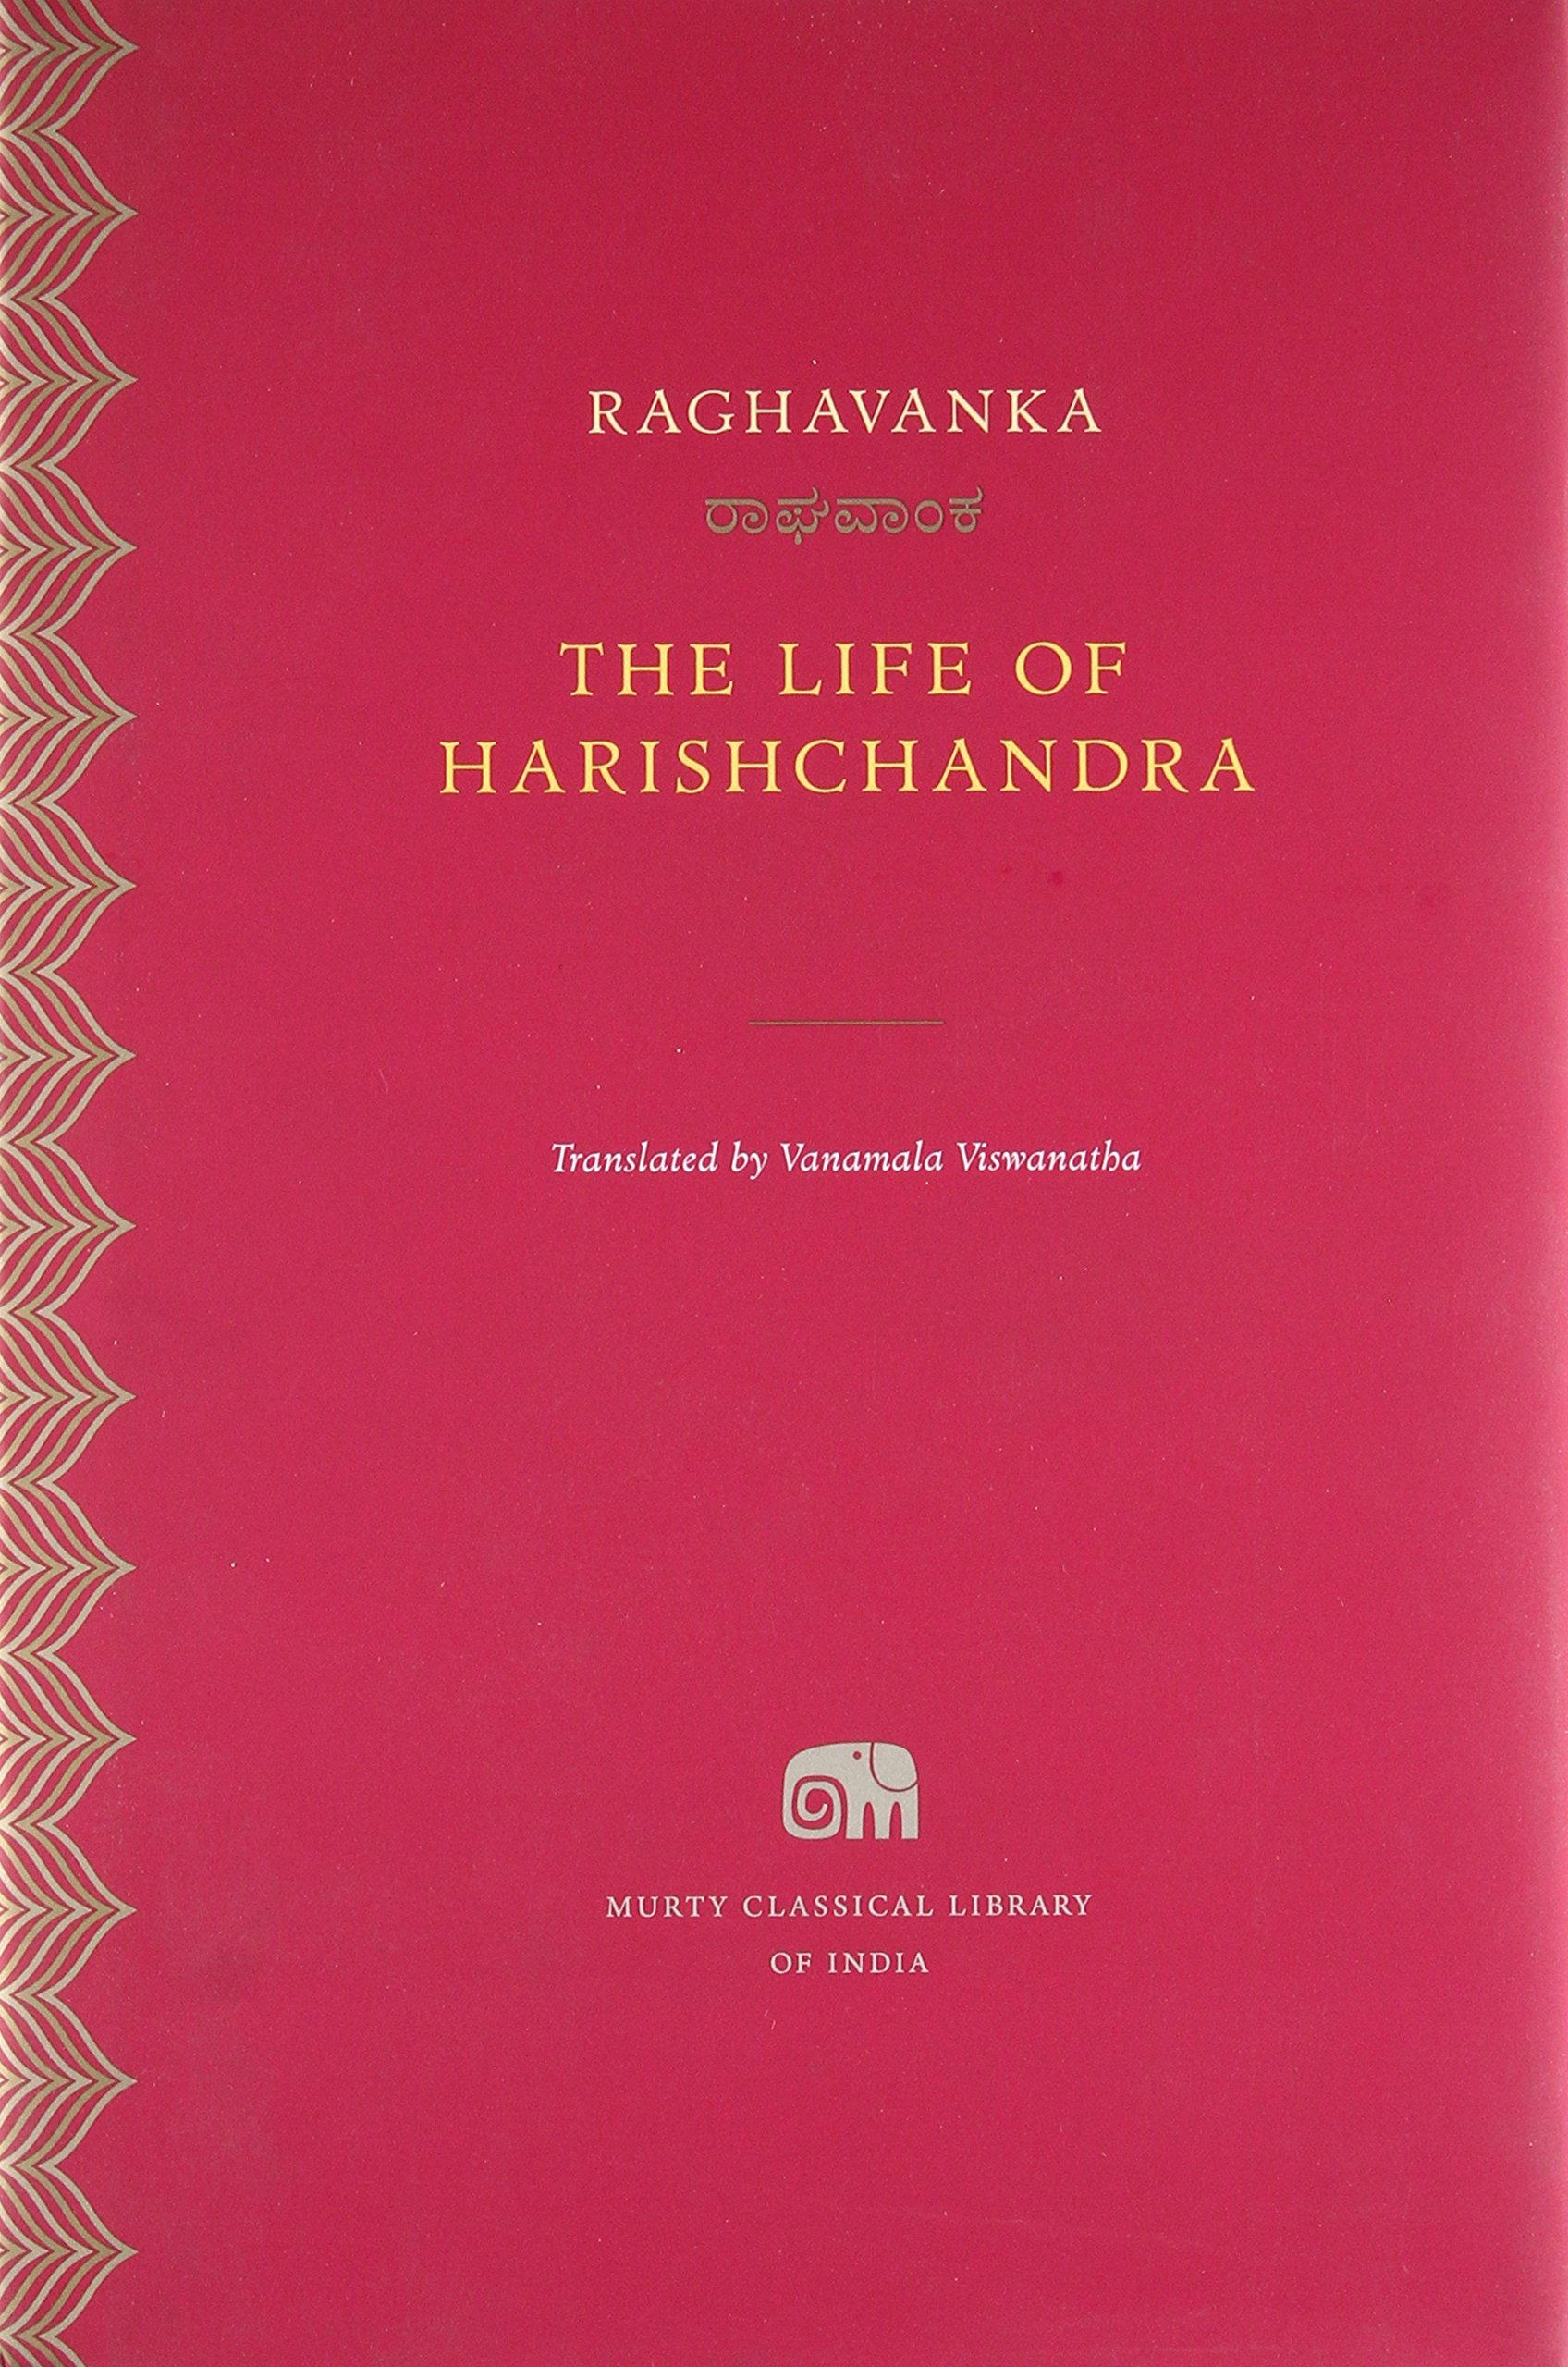 Book cover of The life of Harishchandra